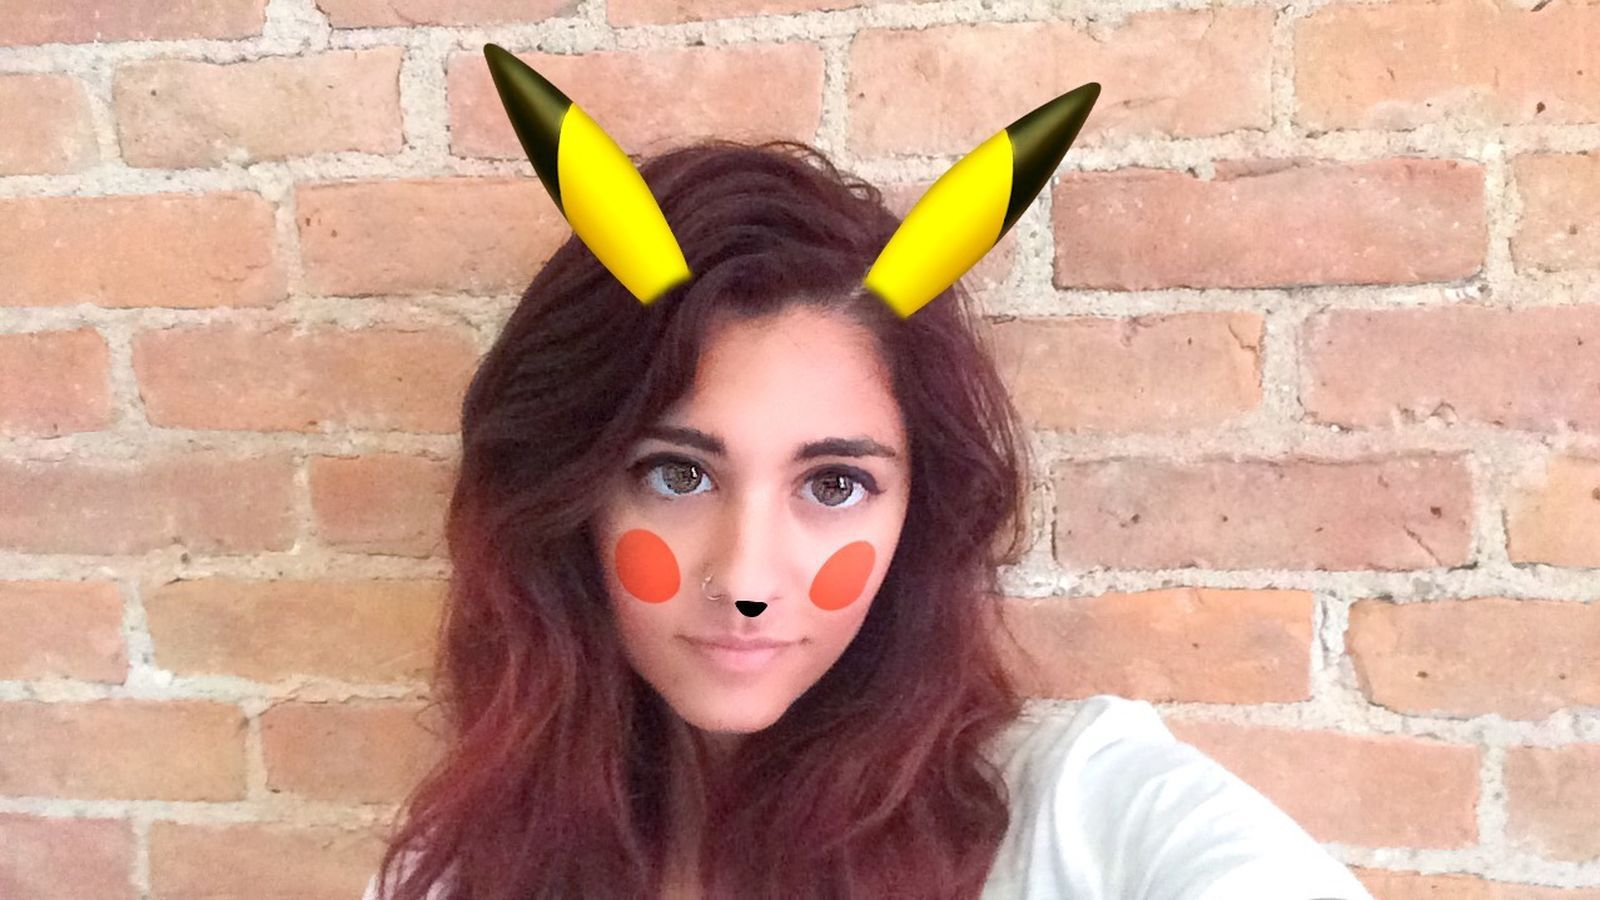 Snapchat adds a Pikachu filter for your kawaii pokémon